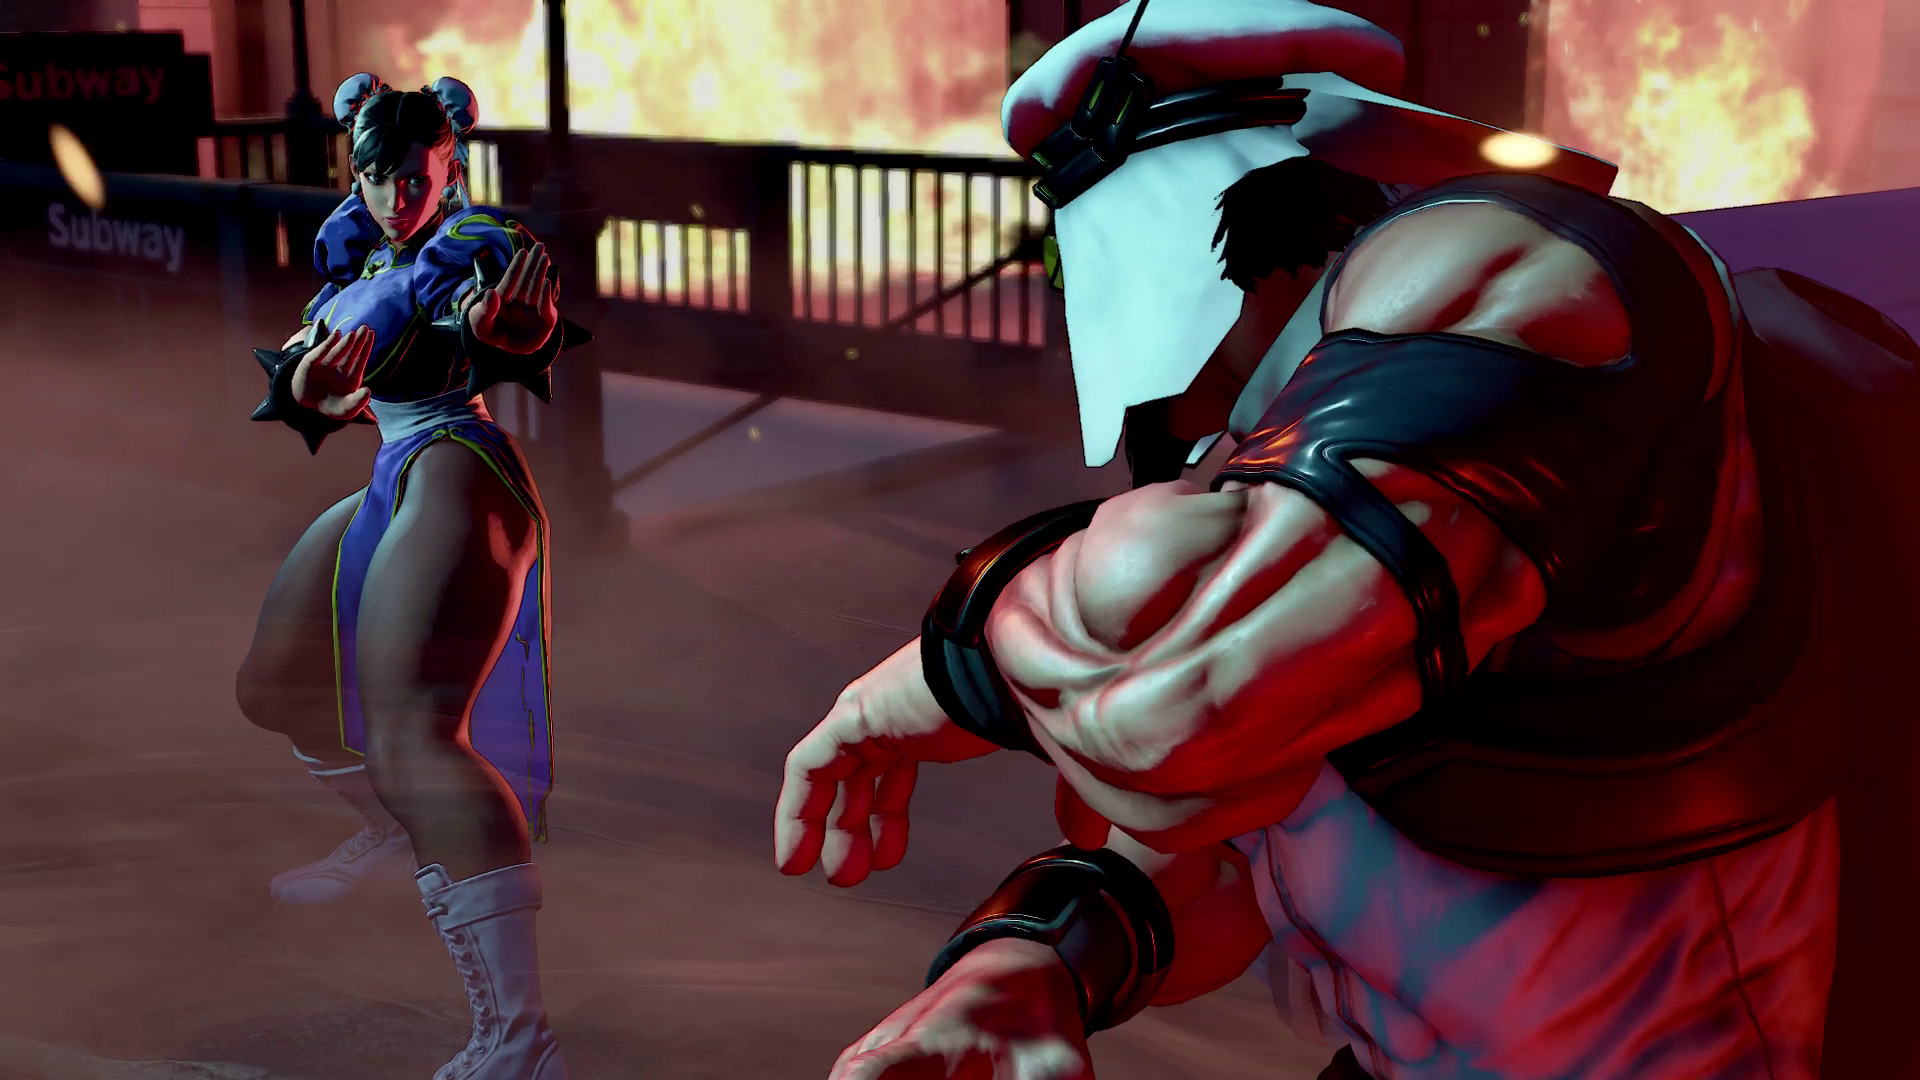 """Street Fighter"" Producer Admits Underestimating Popularity of Single Player"